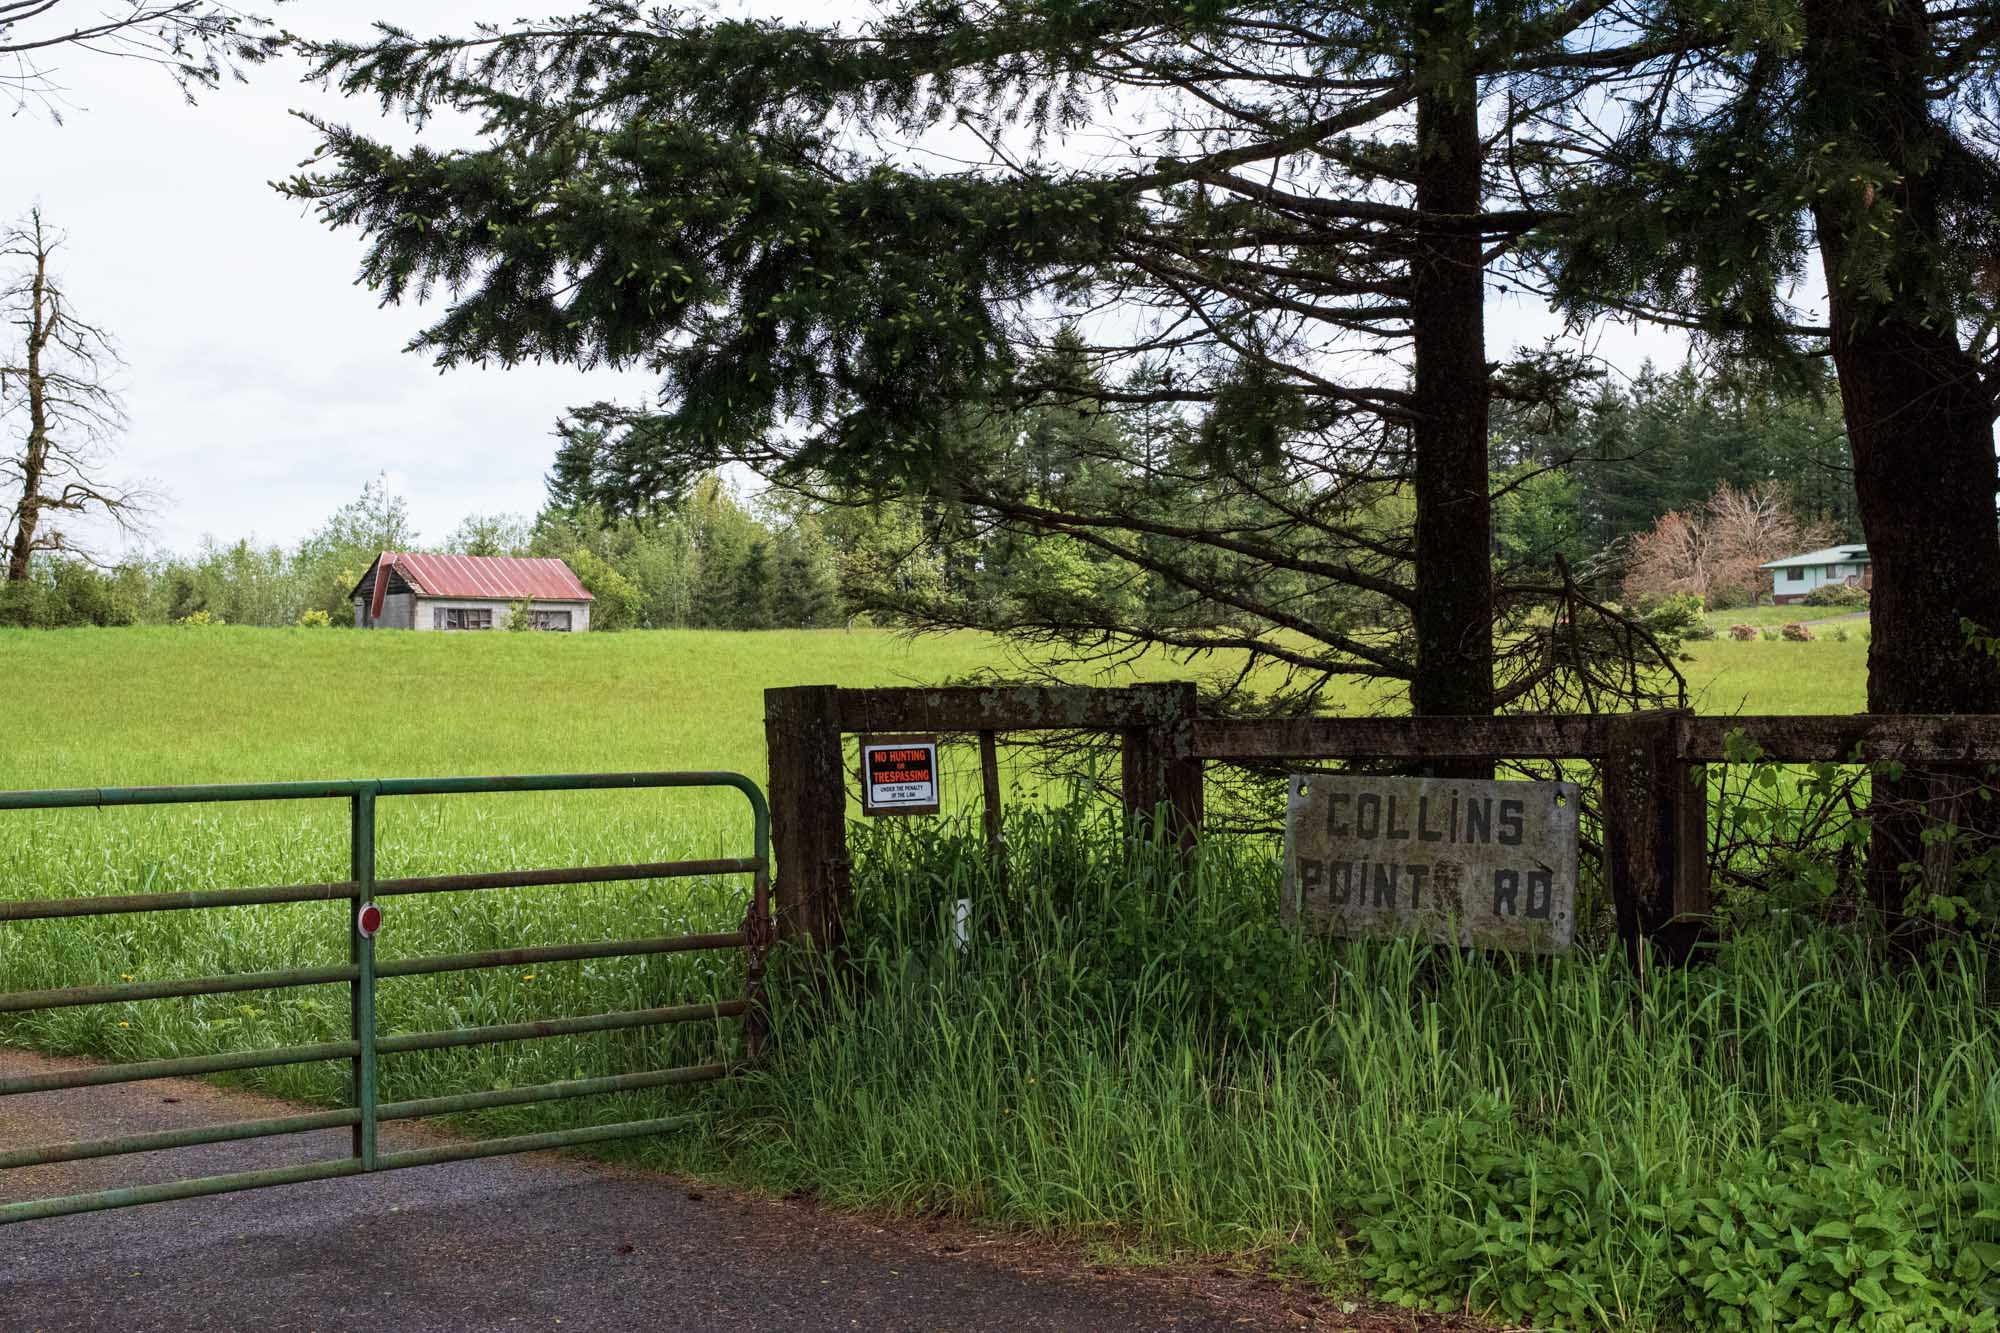 the entrance to a farm in rural Oregon